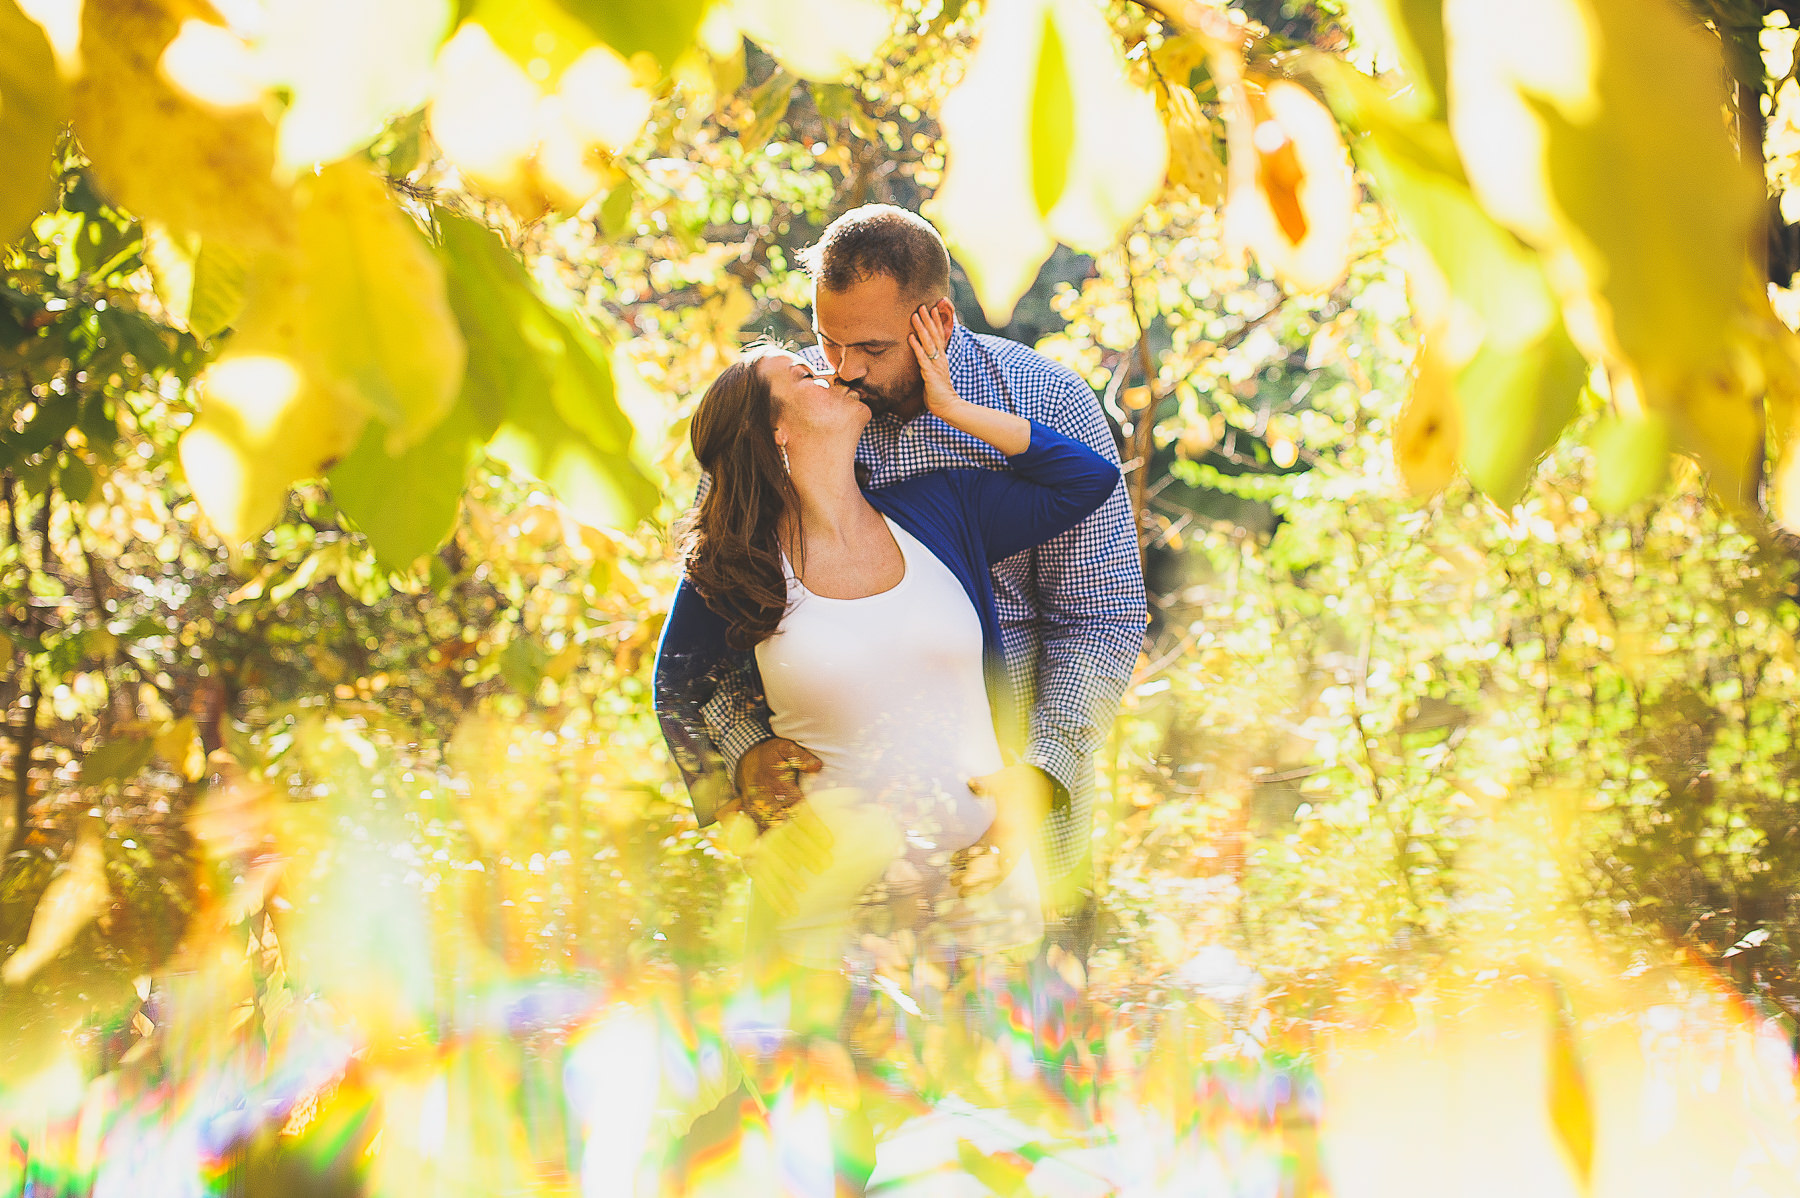 breighton-and-basette-photography-copyrighted-image-blog-sarah-jeff-maternity-lead-image.jpg